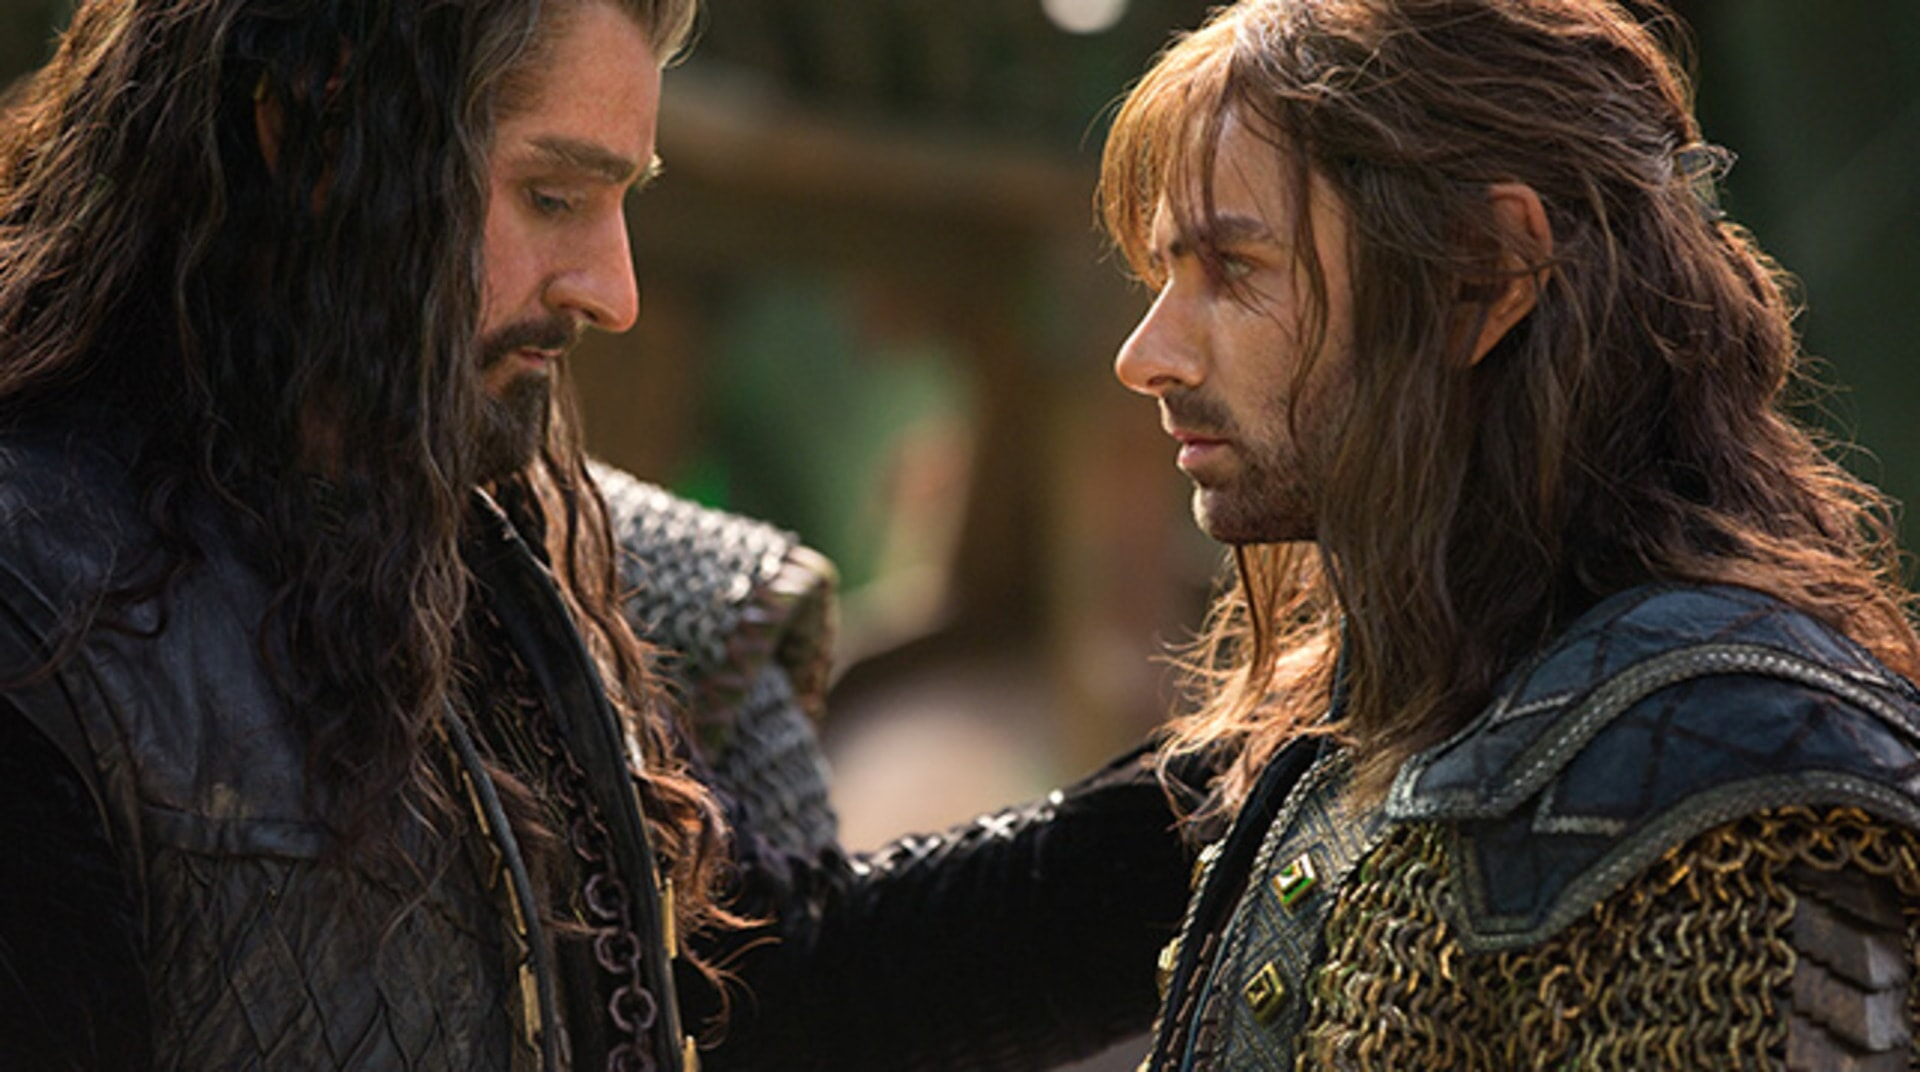 The Hobbit: The Battle of the Five Armies - Image 7